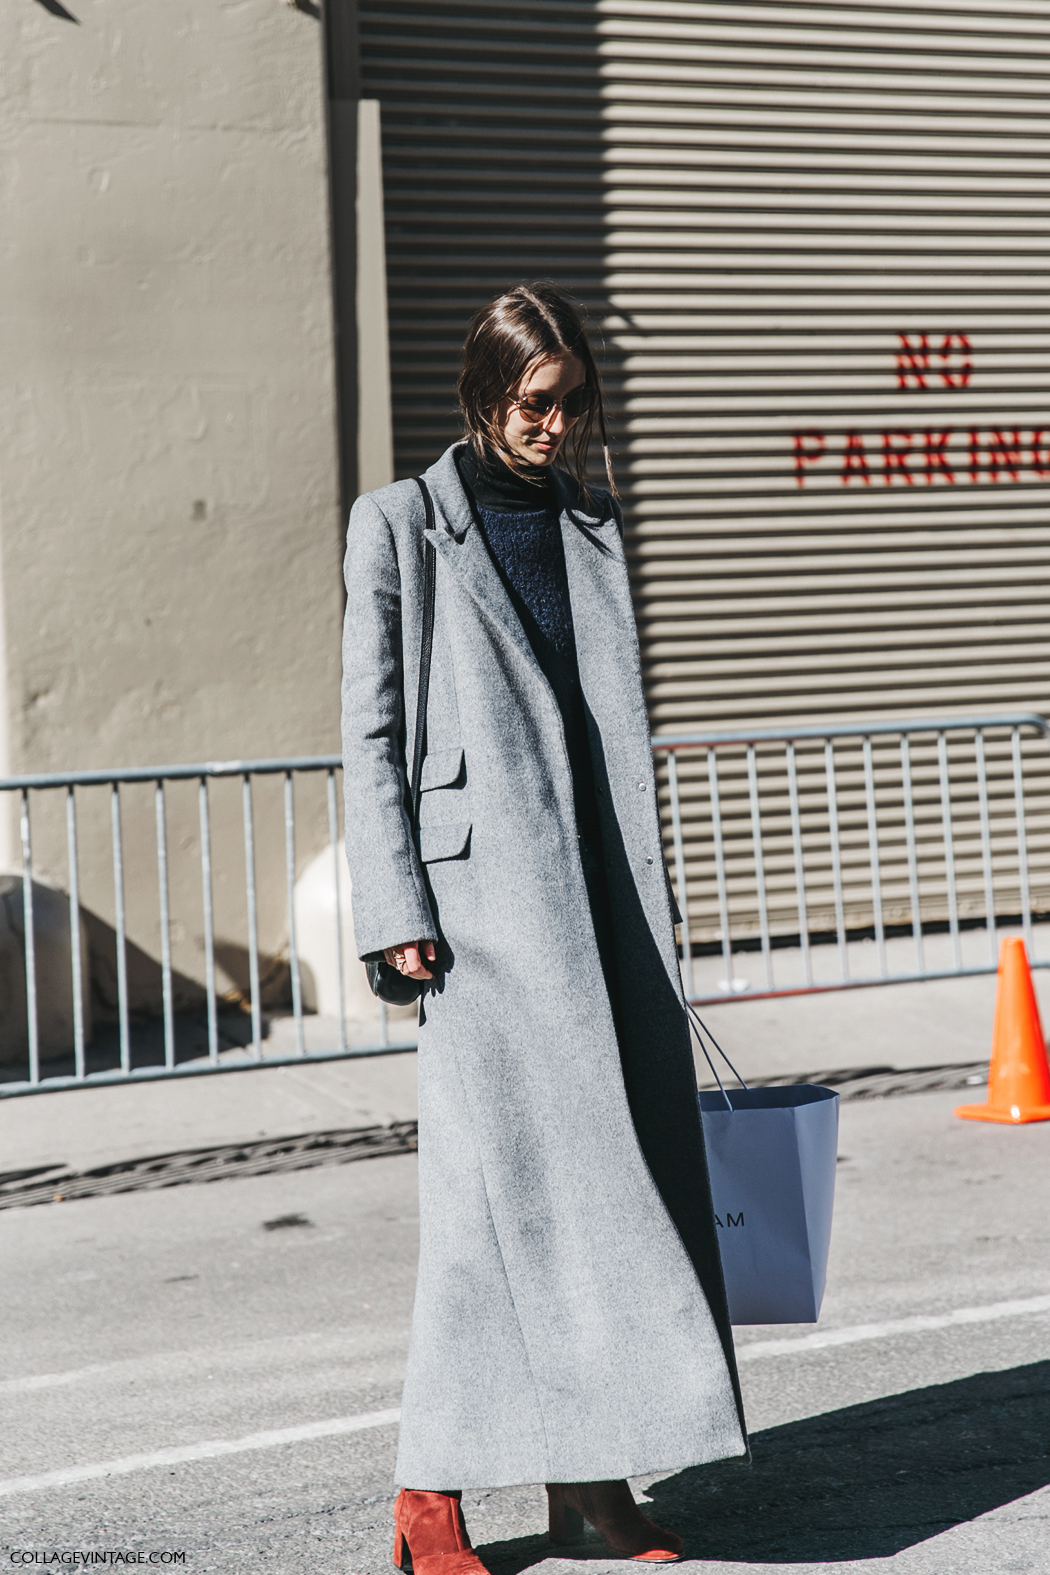 NYFW-New_York_Fashion_Week-Fall_Winter-17-Street_Style-Model-Grey_Long_Coat-Jeans-5